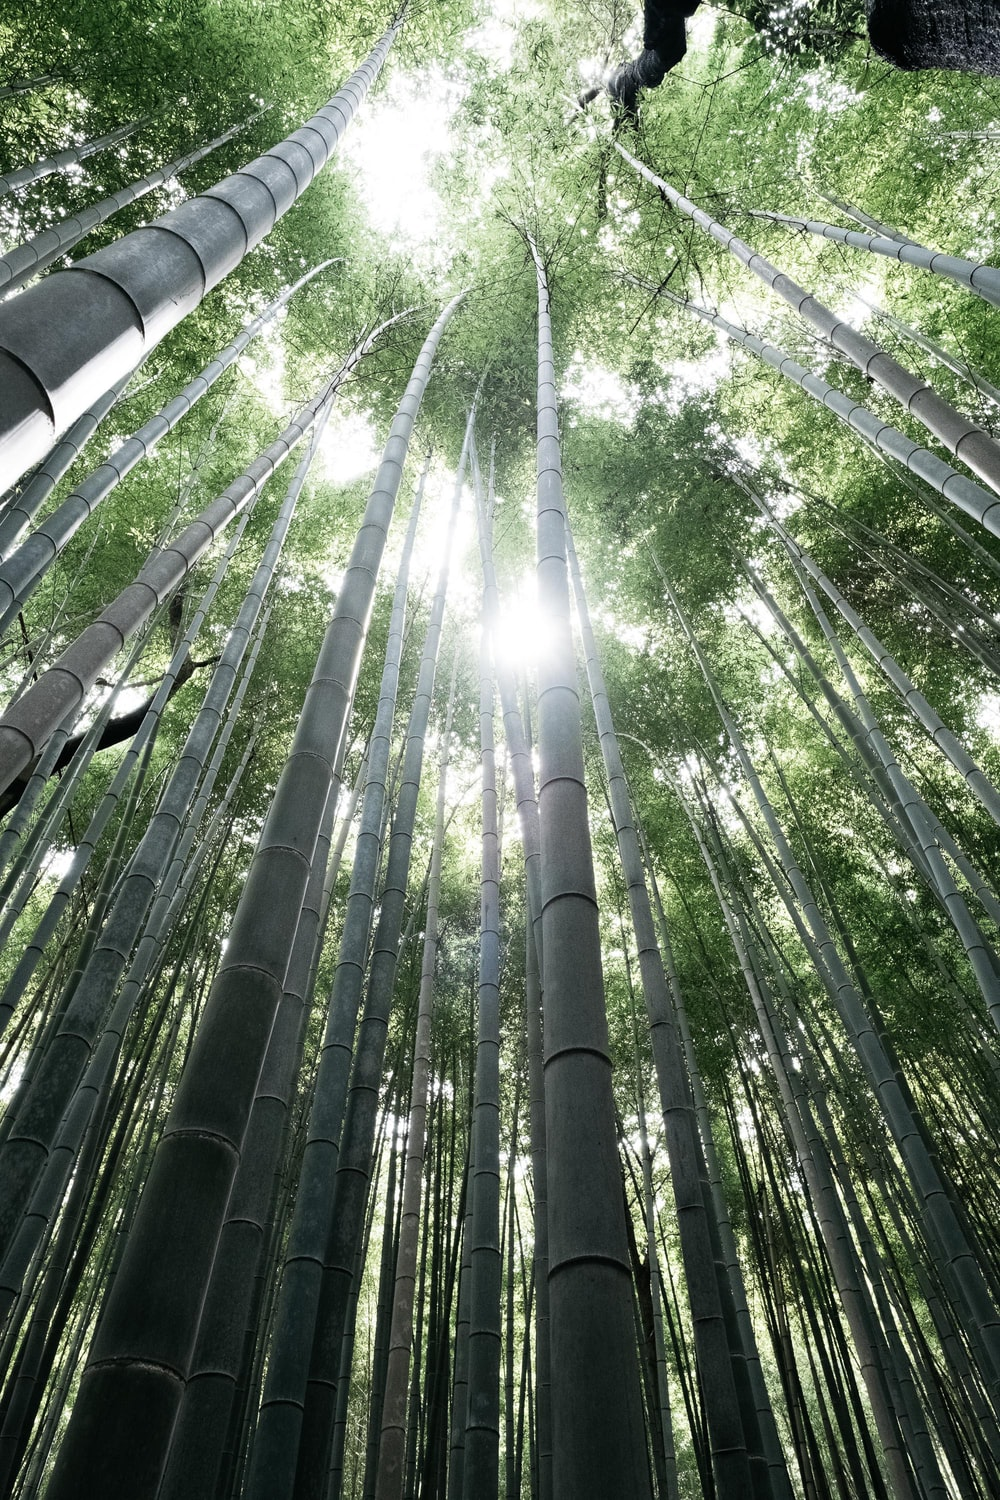 low angle photography of green bamboo trees